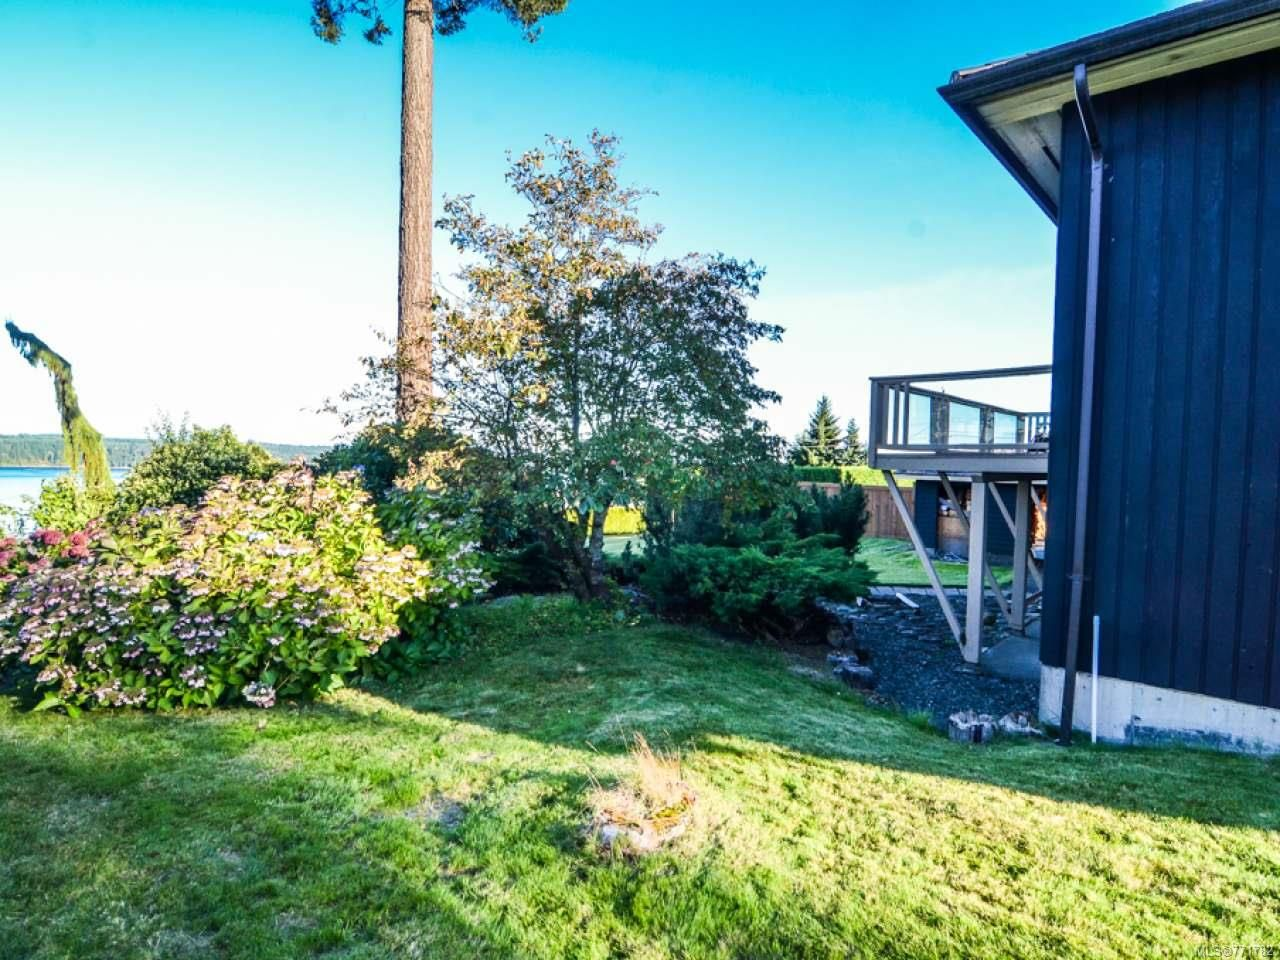 Photo 10: Photos: 451 S McLean St in CAMPBELL RIVER: CR Campbell River Central House for sale (Campbell River)  : MLS®# 771782